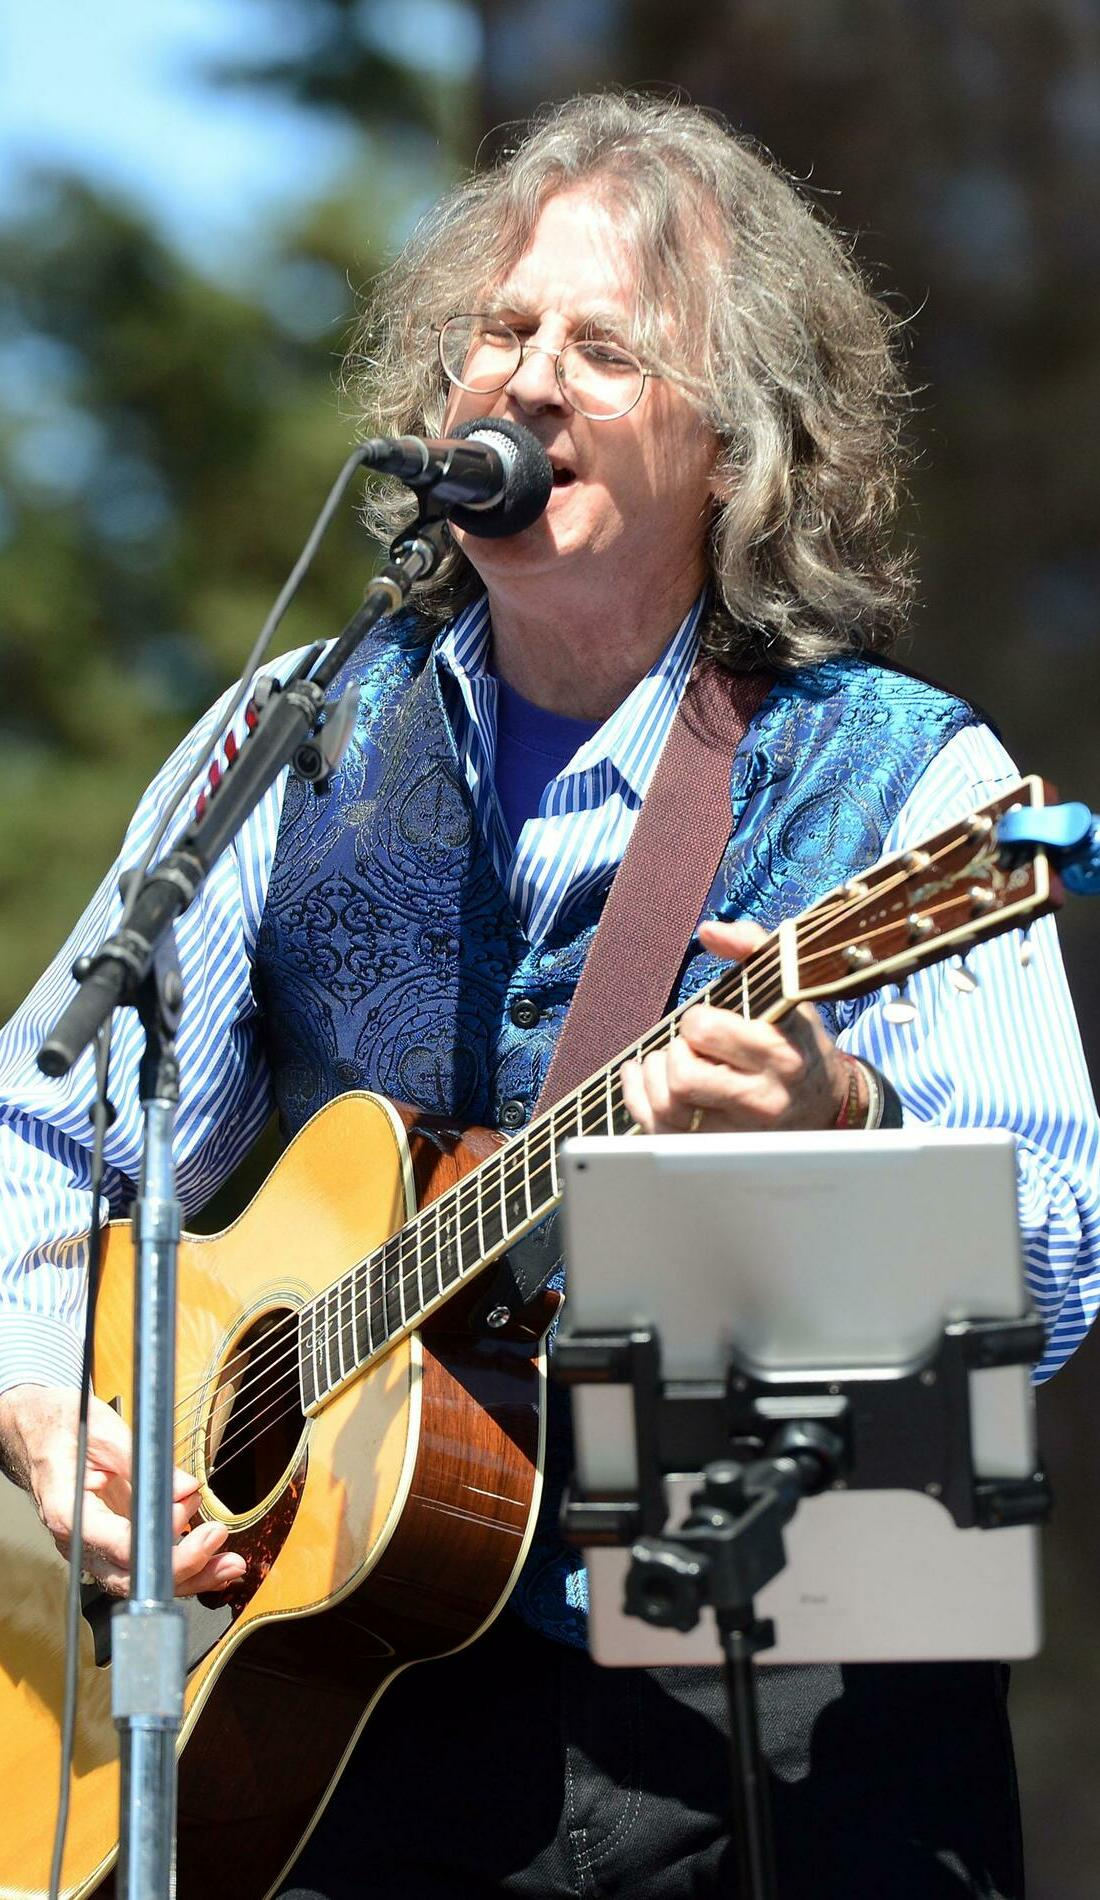 A Moonalice live event